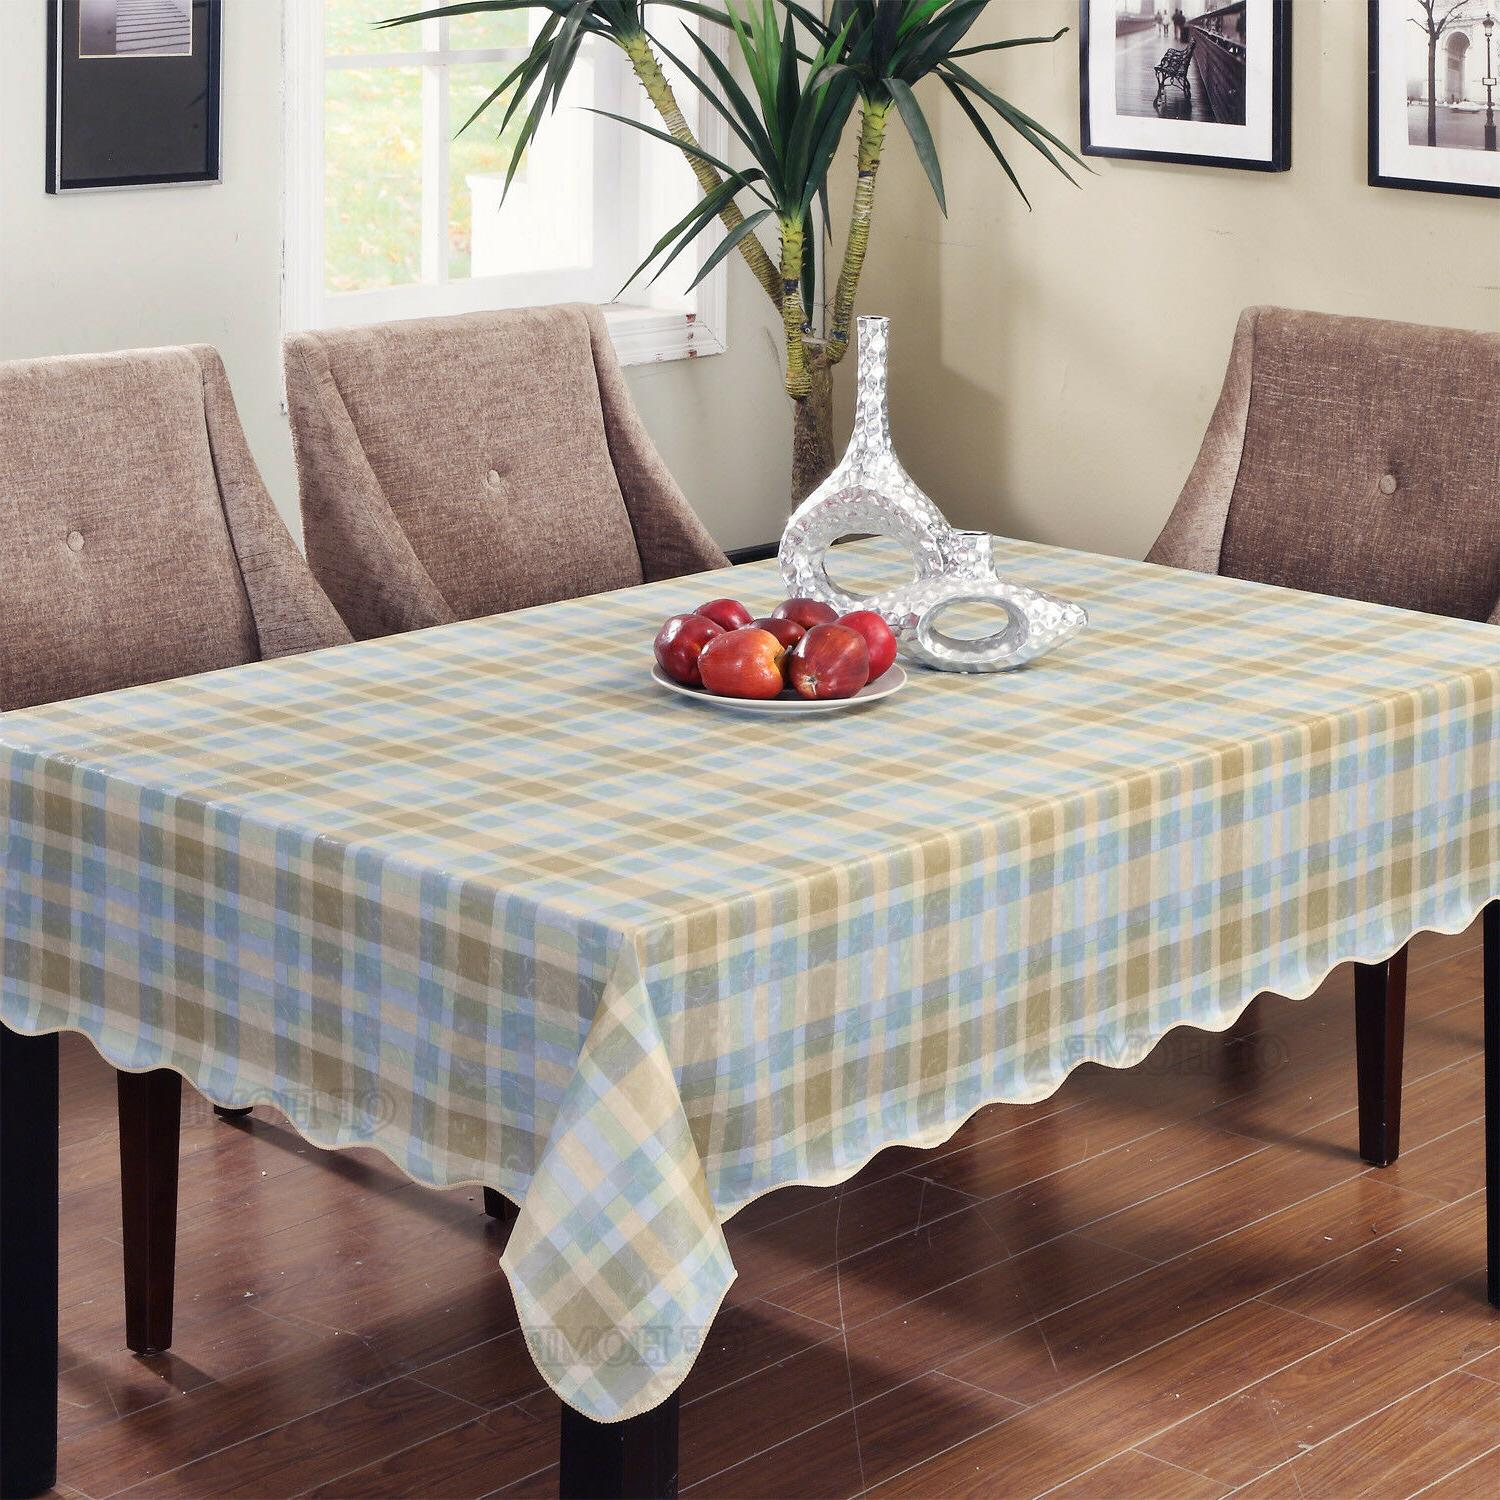 Warterproof Vinyl with Flannel Backed Rectangle/Oblong